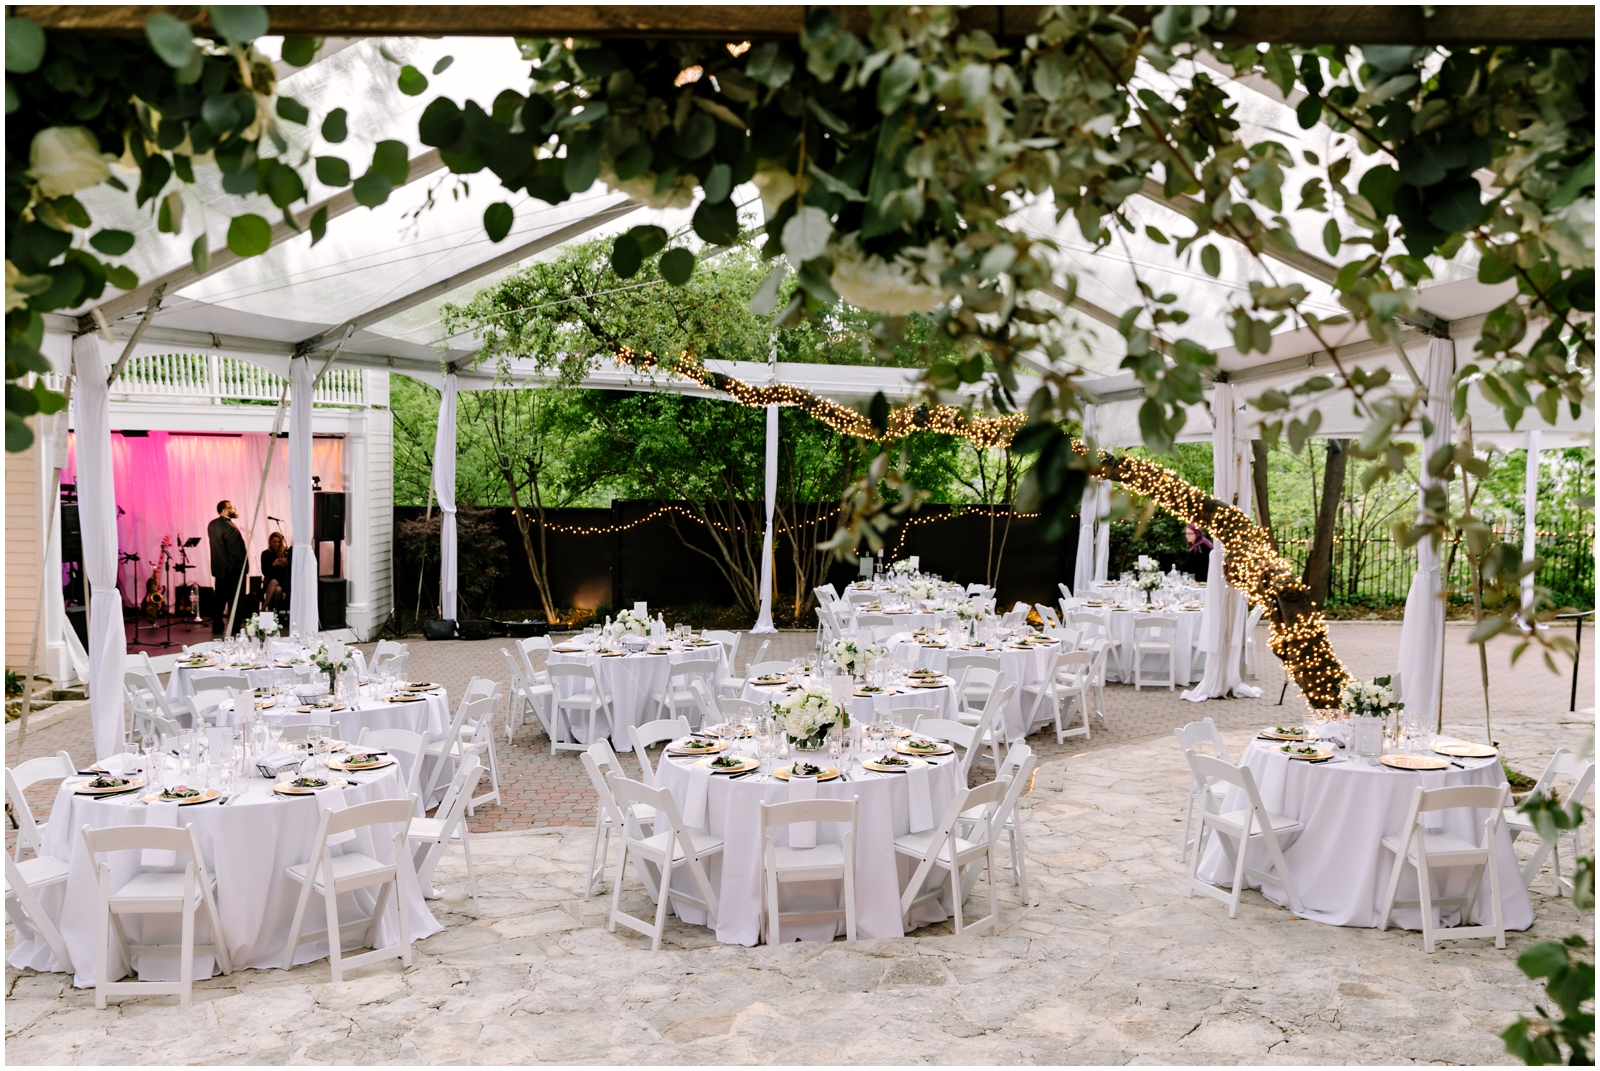 Garden wedding venue in Texas